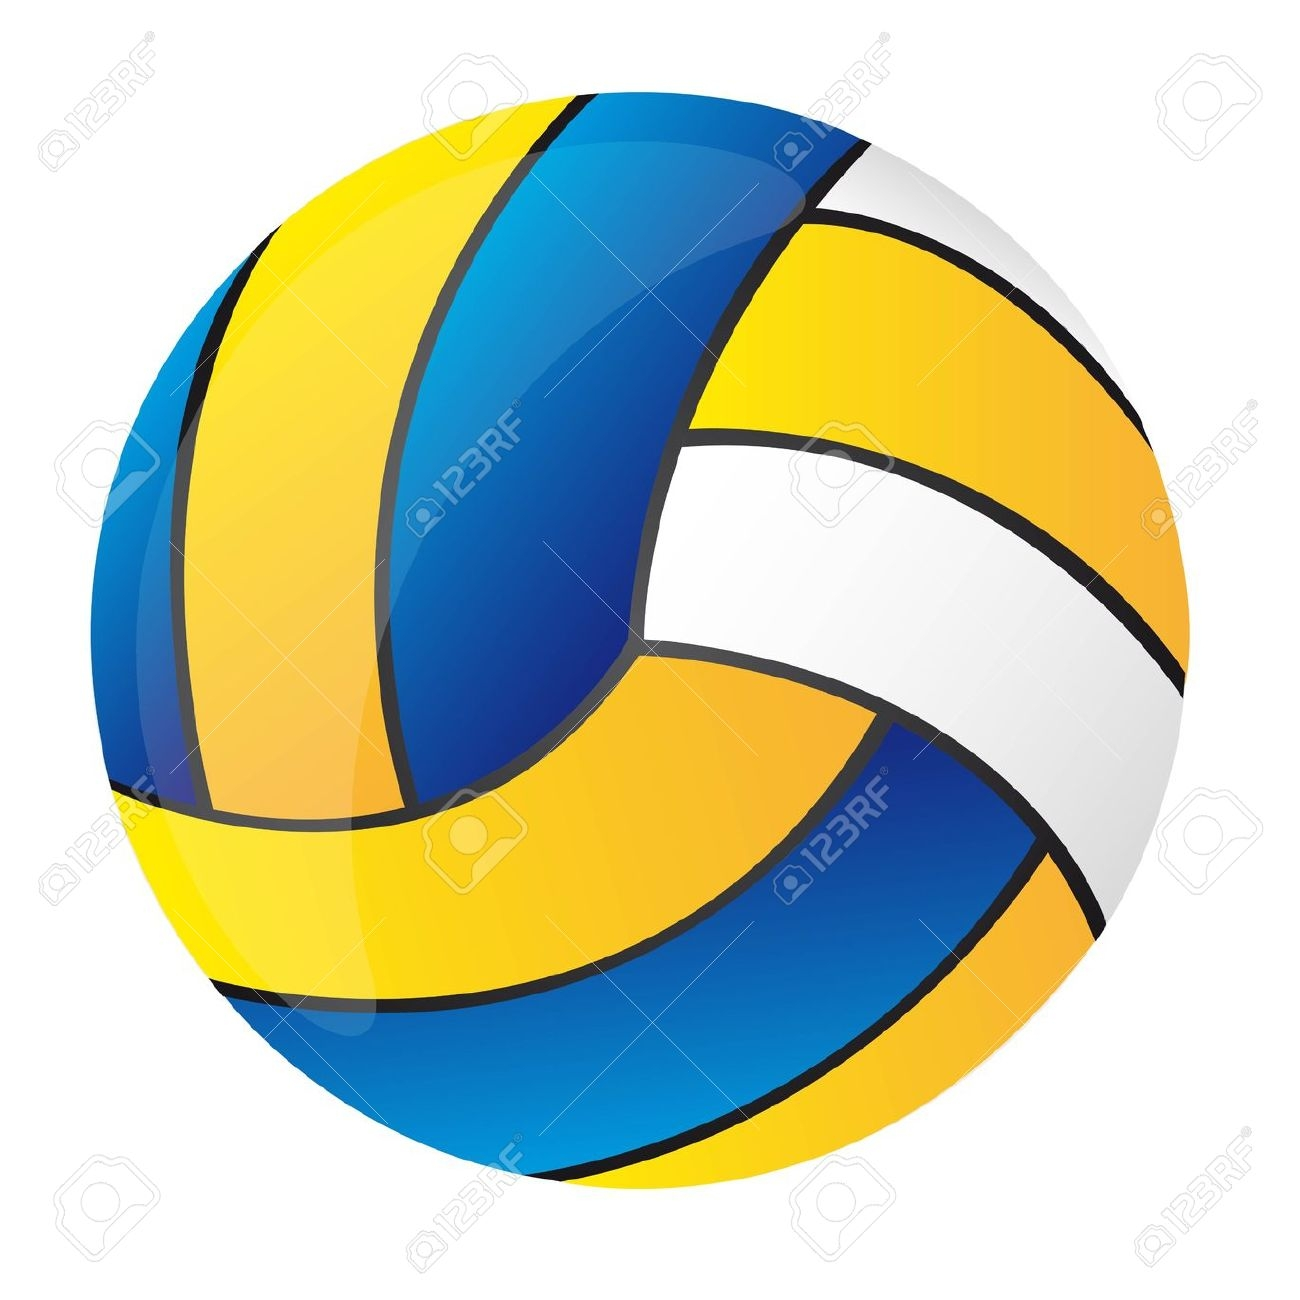 Blue And White Volleyball Clipart.